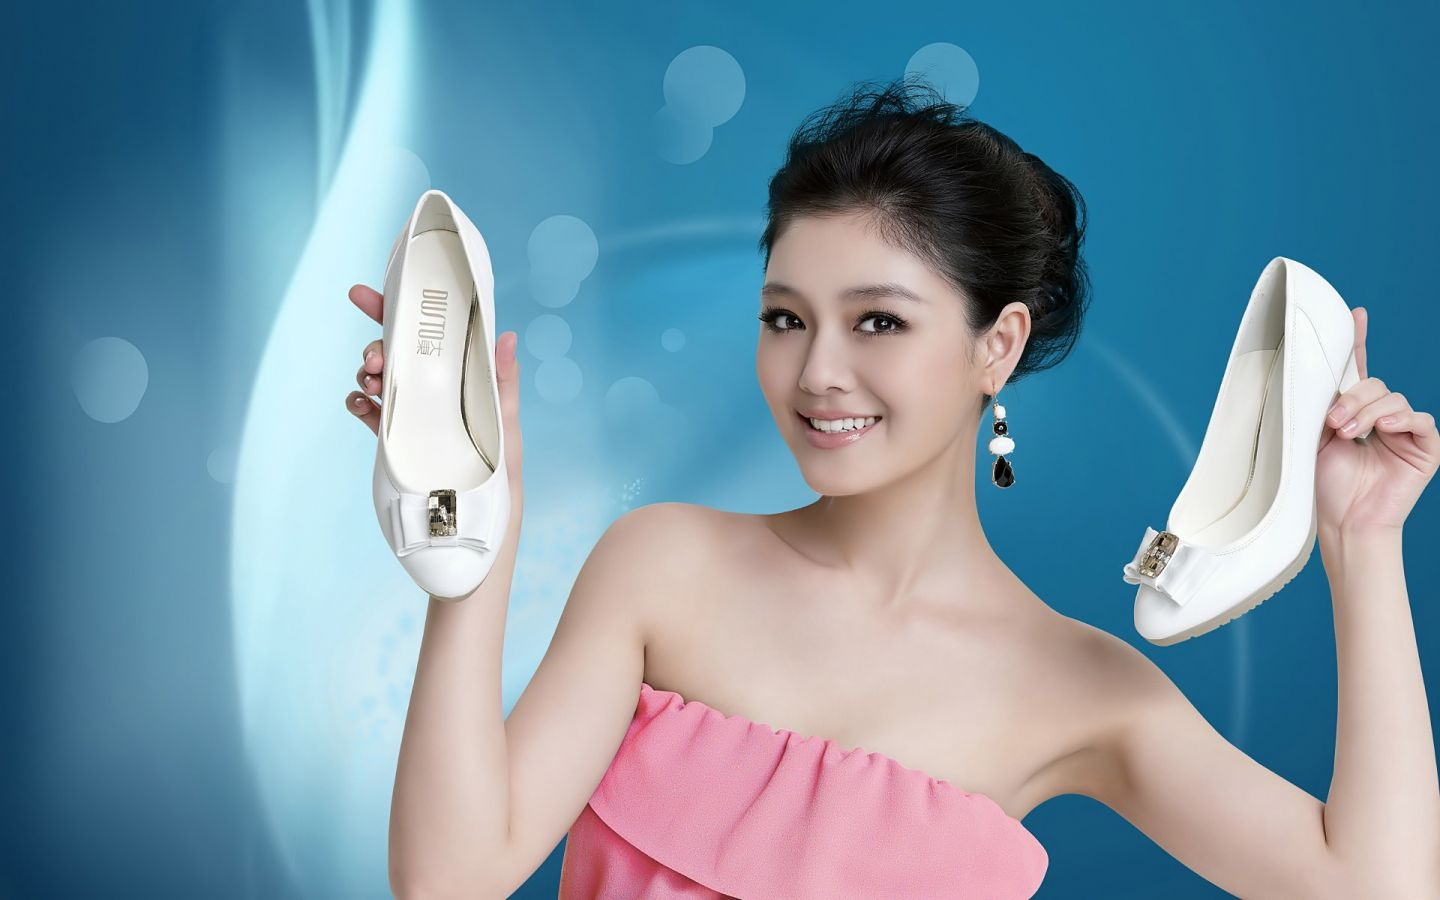 1440x900 - Barbie Hsu Wallpapers 28